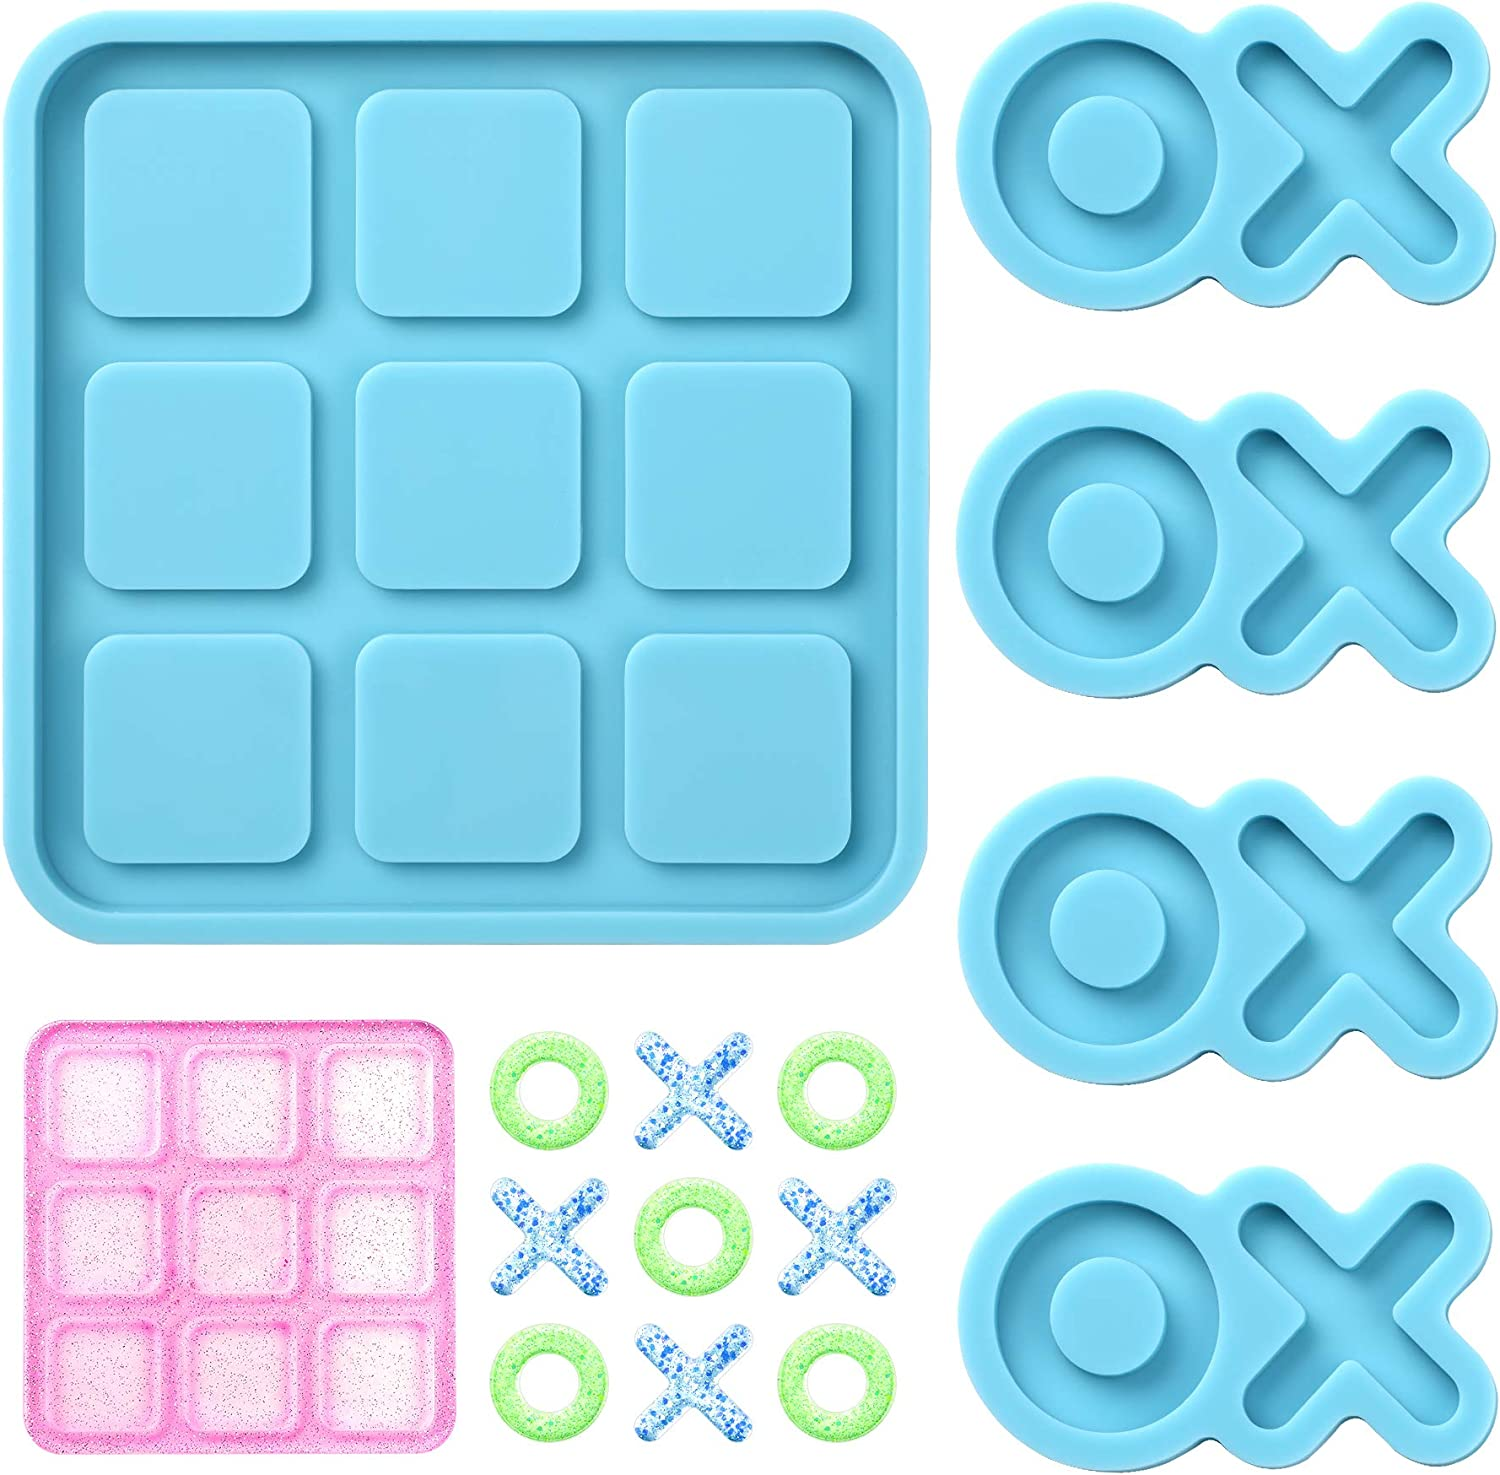 Tic Tac Toe Resin New item Mold with 4 Game Chess Pieces Genuine Molds O X Board